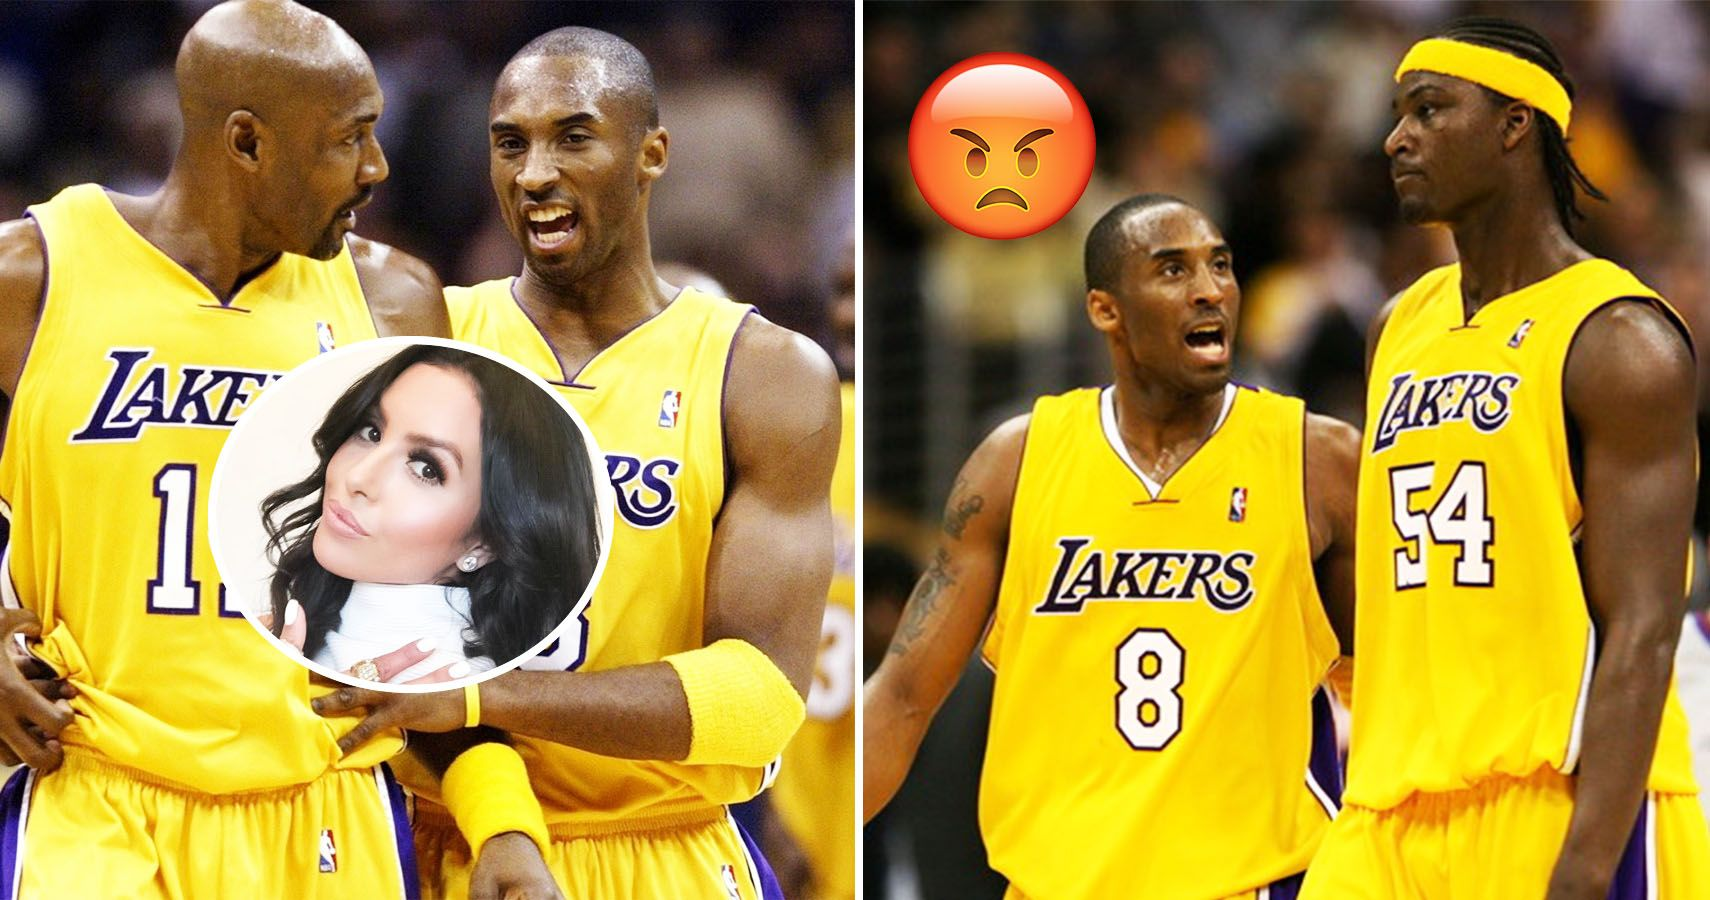 9884980a846 Things You Didn t Know About Kobe Bryant s Relationships With His Teammates